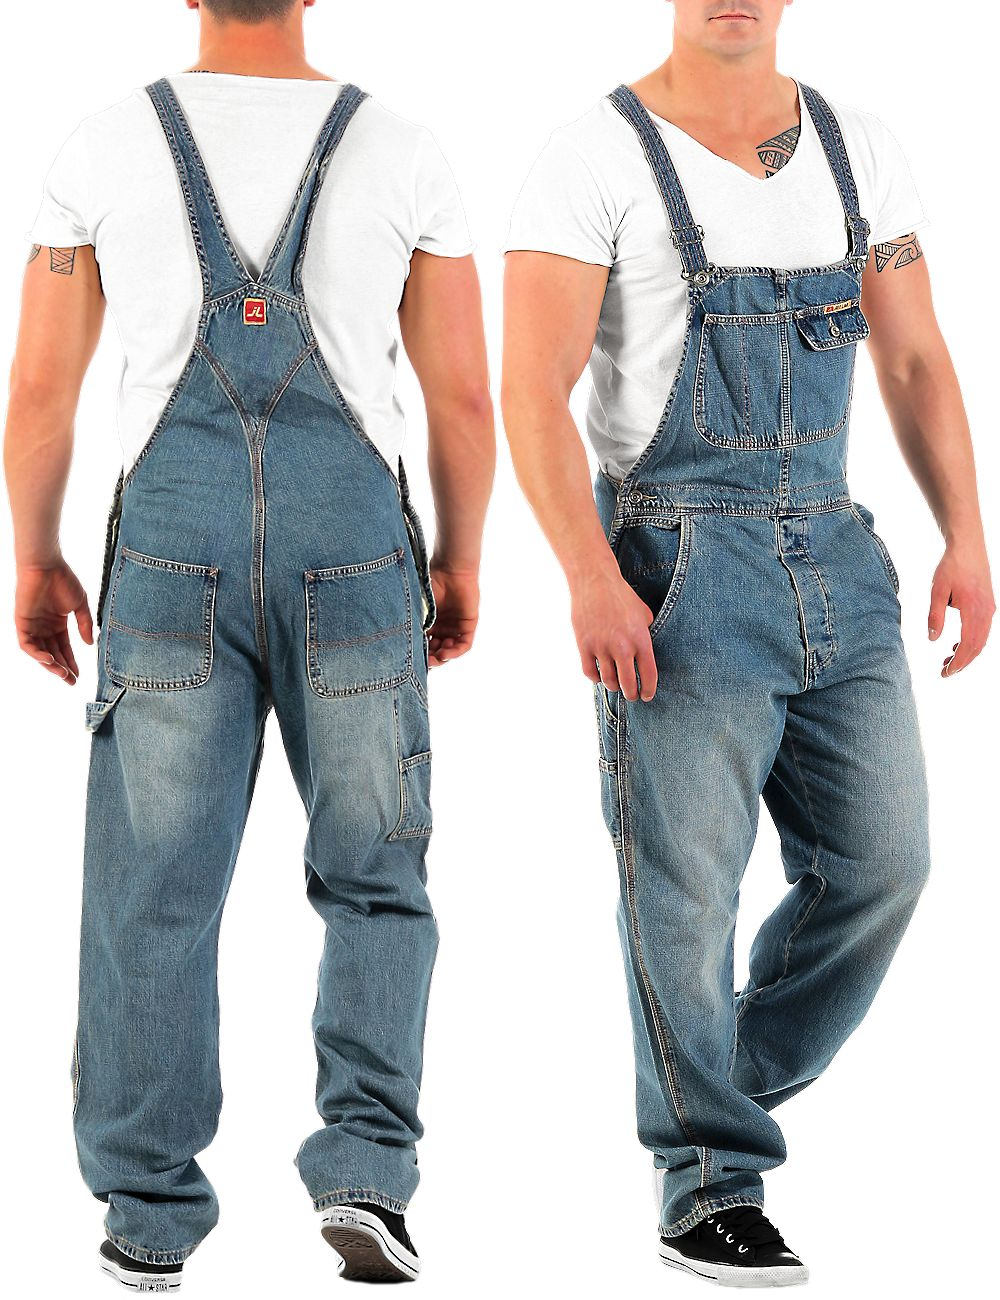 jet lag herren latz jeans overall denim long herrenhose latzhose latzjeans hose ebay. Black Bedroom Furniture Sets. Home Design Ideas